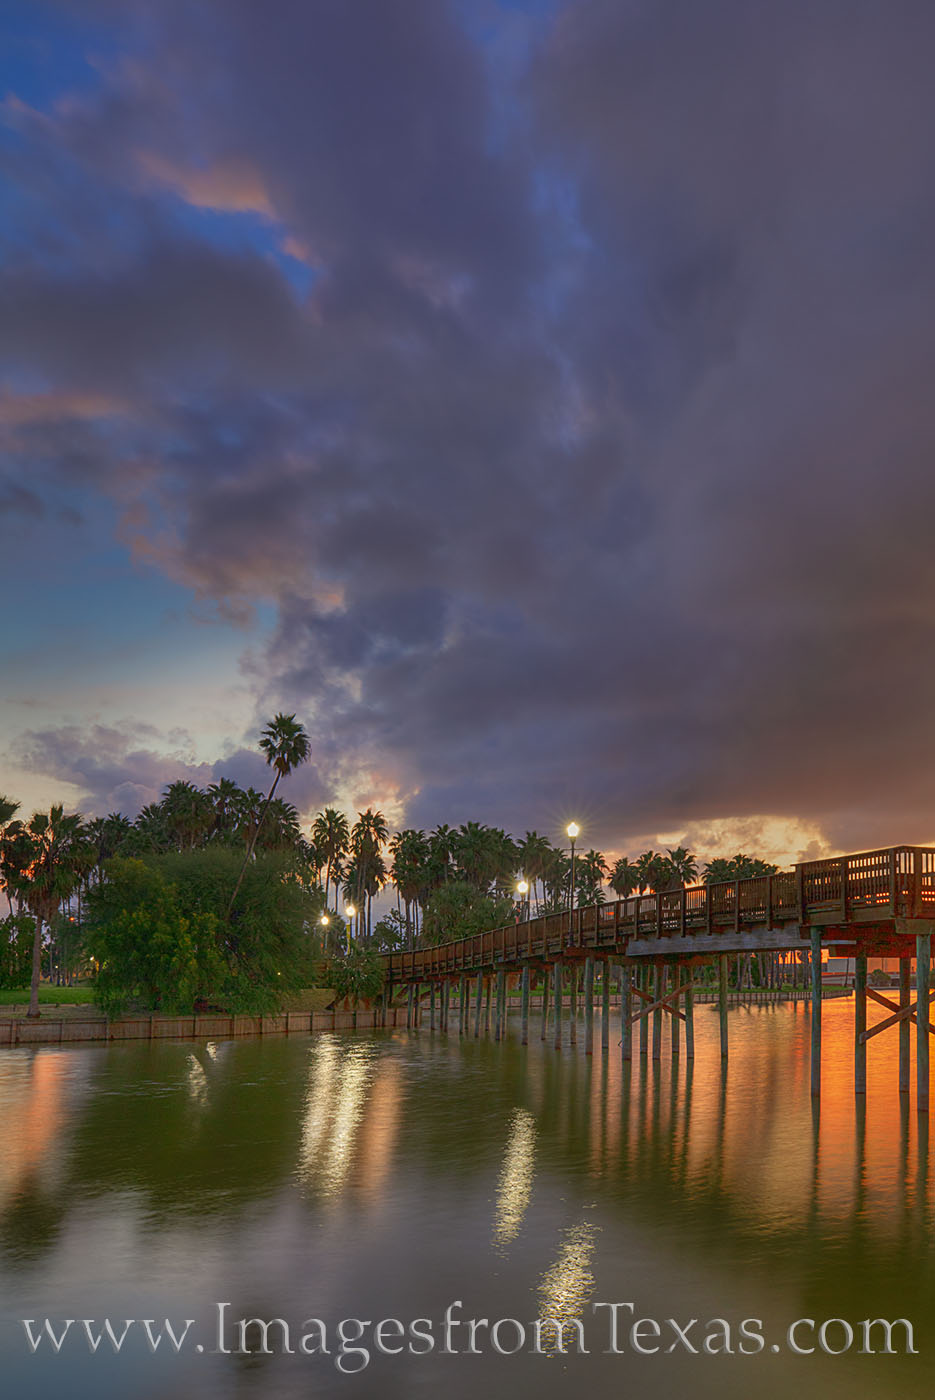 brownsville, resaca, water, sunset, bridge, evening, reflection, clouds, south texas, bordertown, texas coast, photo